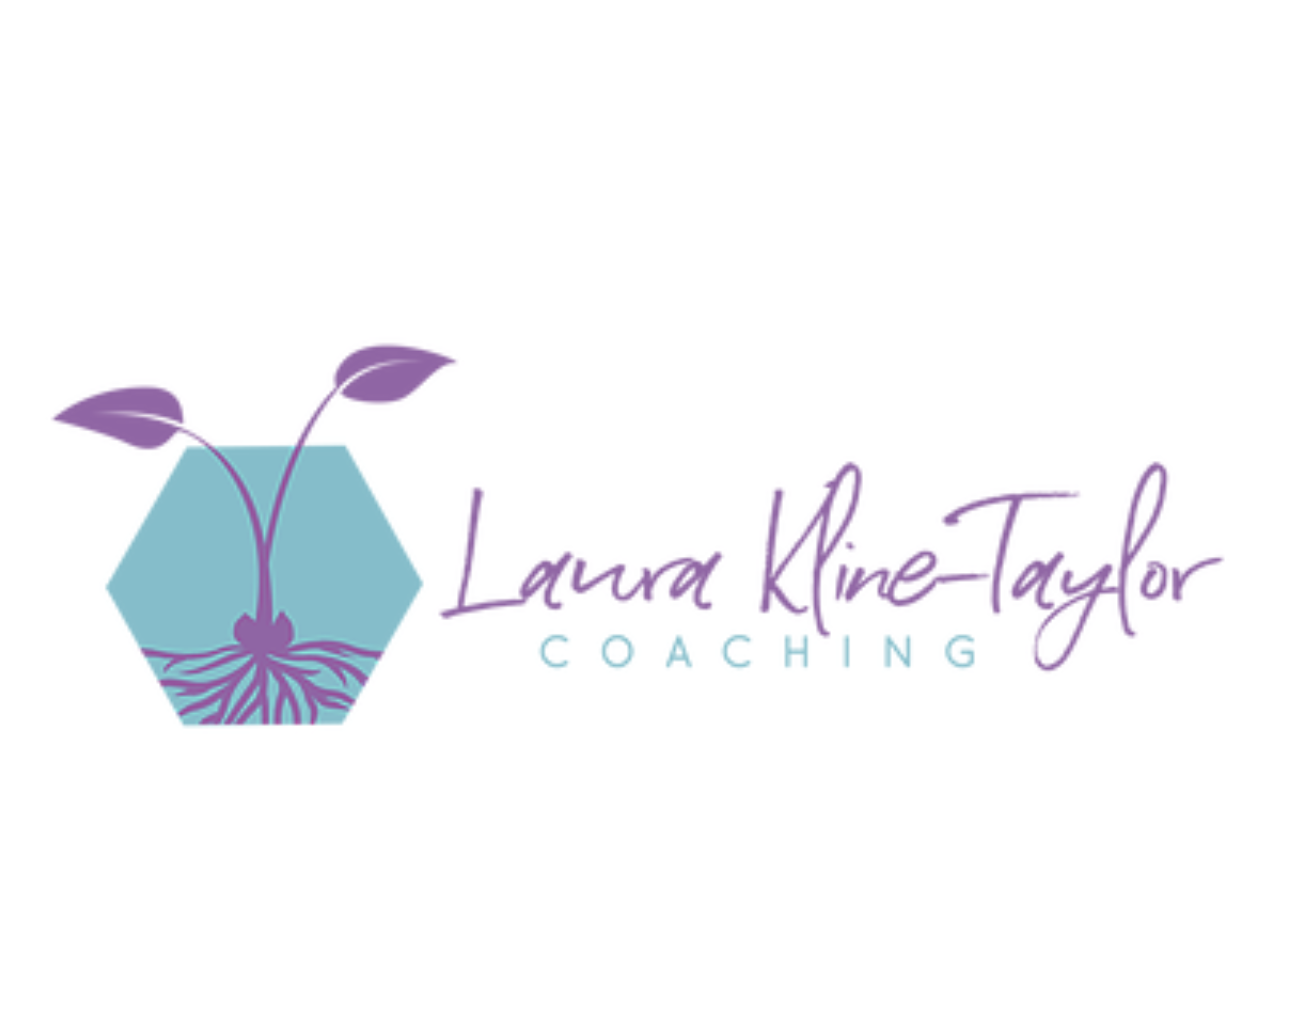 Laura Kline-Taylor - life coach for moms